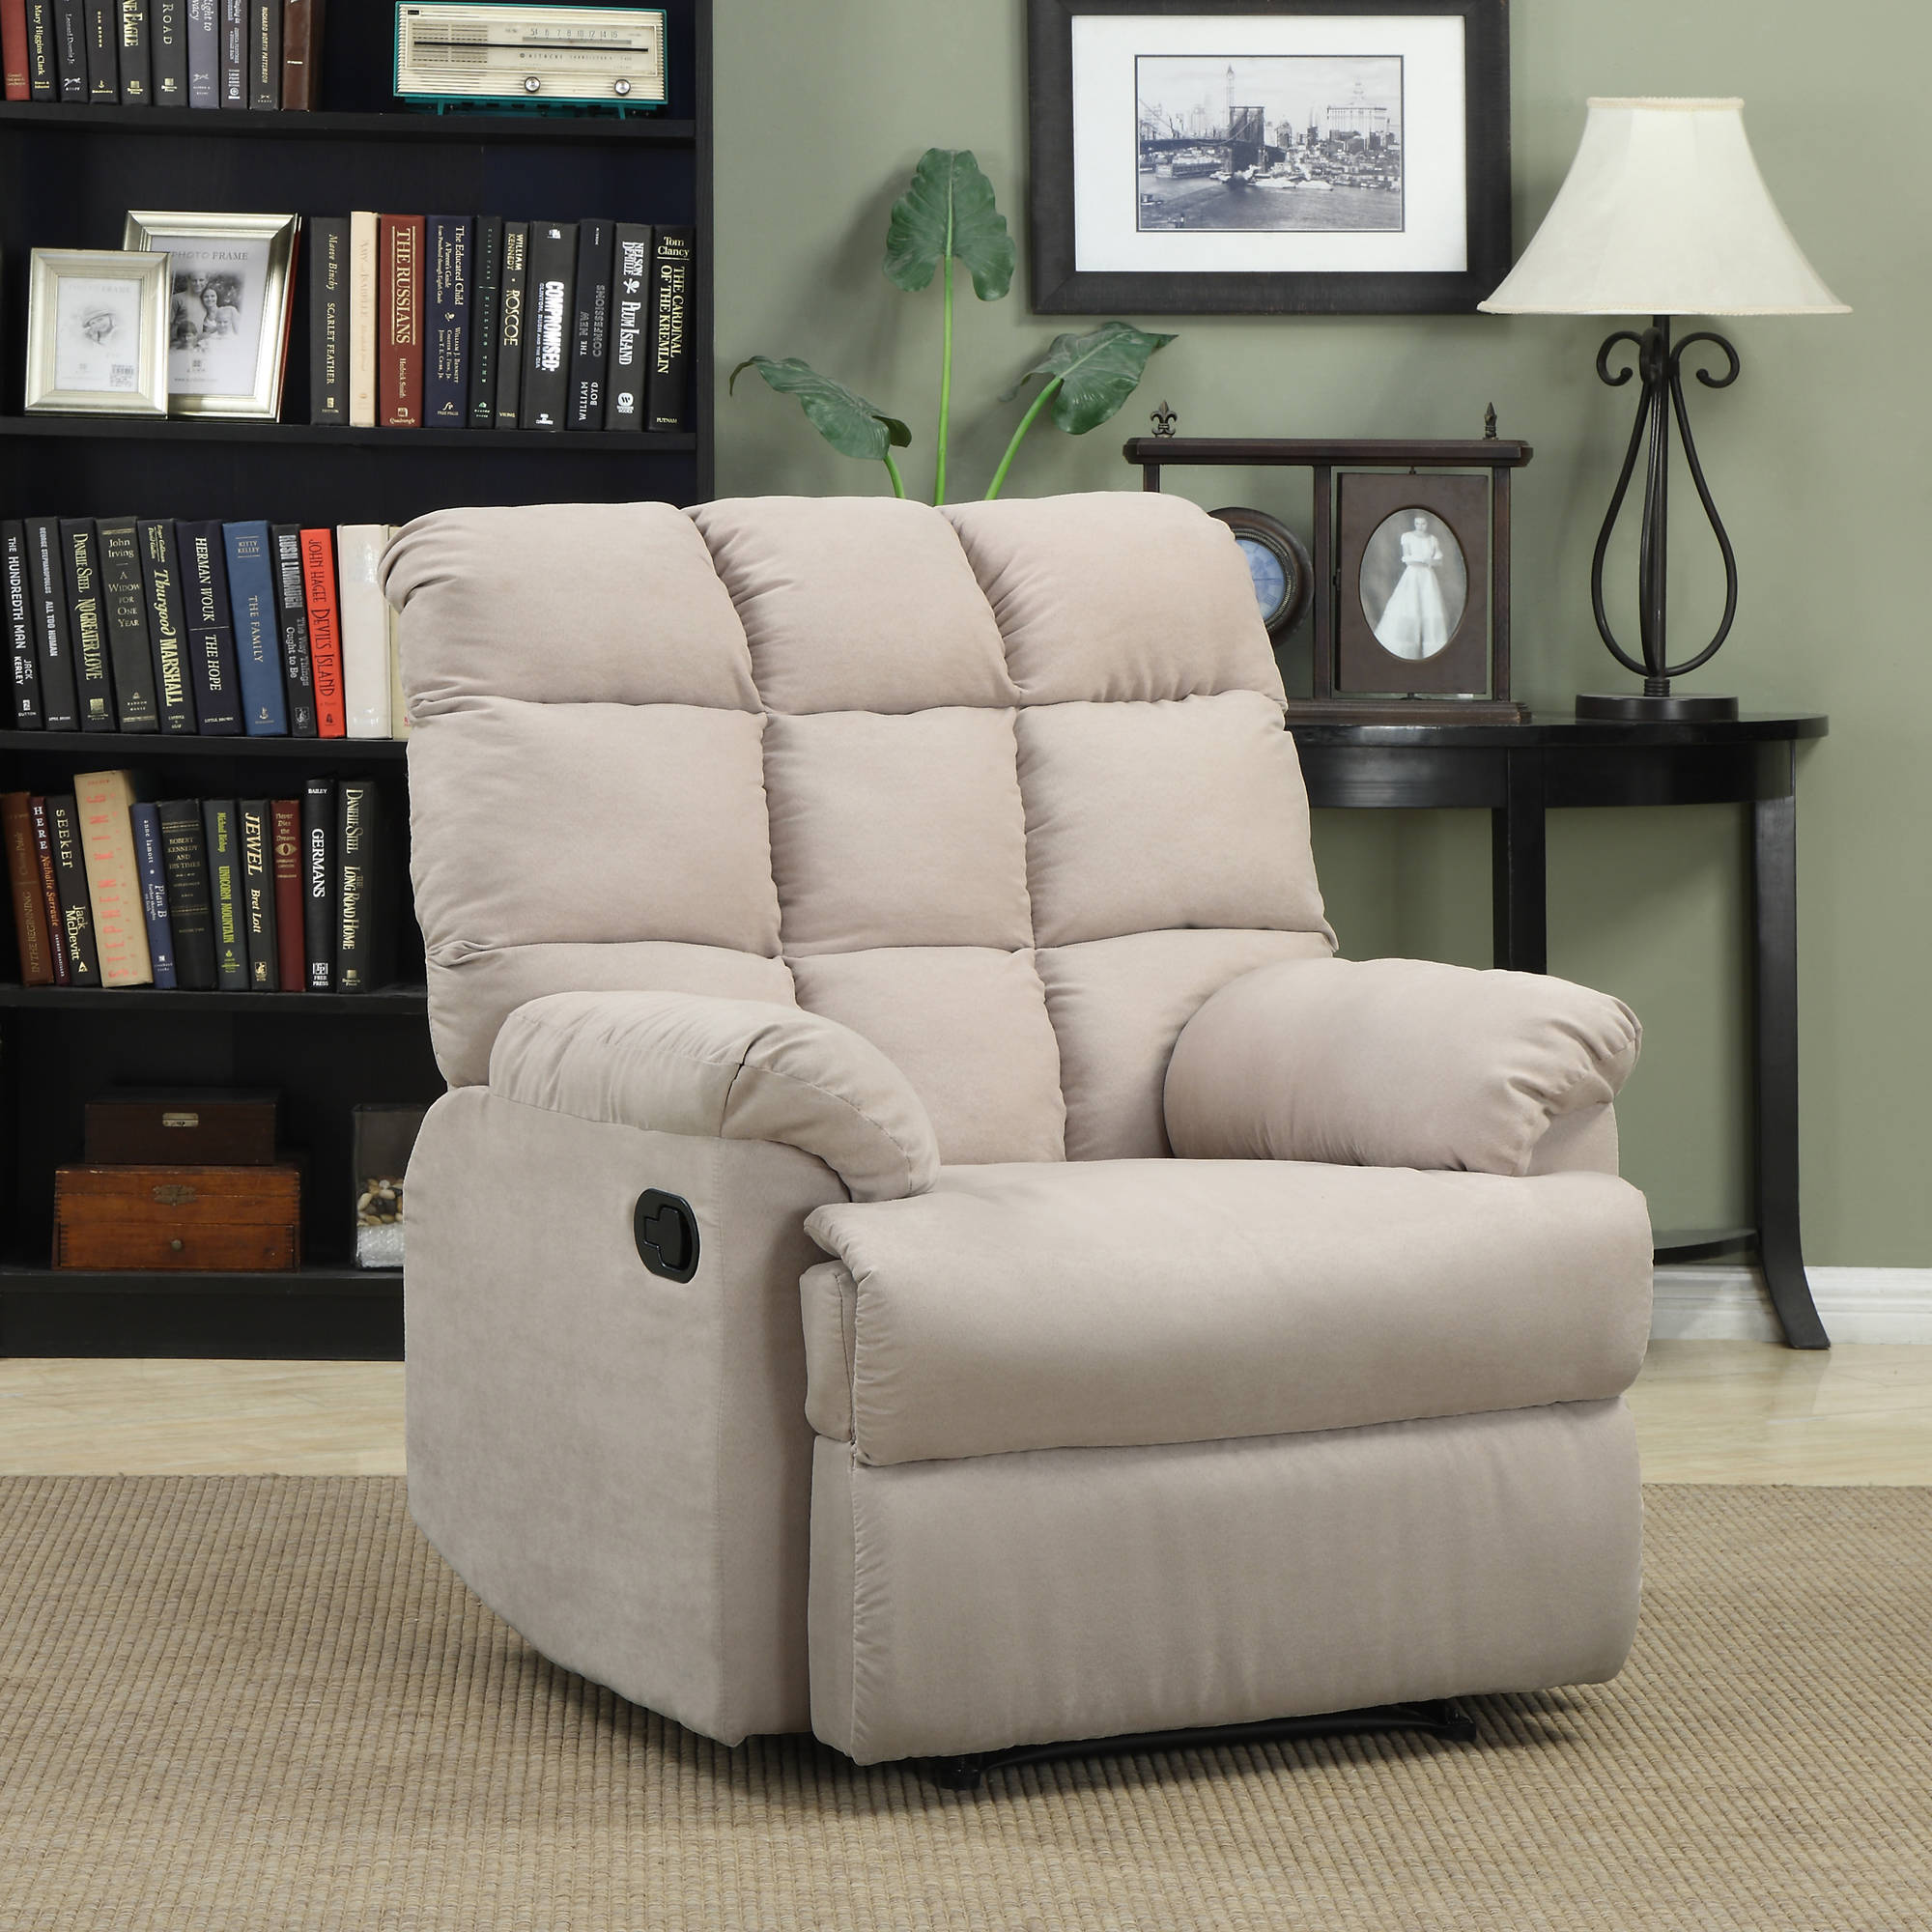 ProLounger Wall Hugger Microfiber Biscuit Back Recliner Chair, Multiple Colors